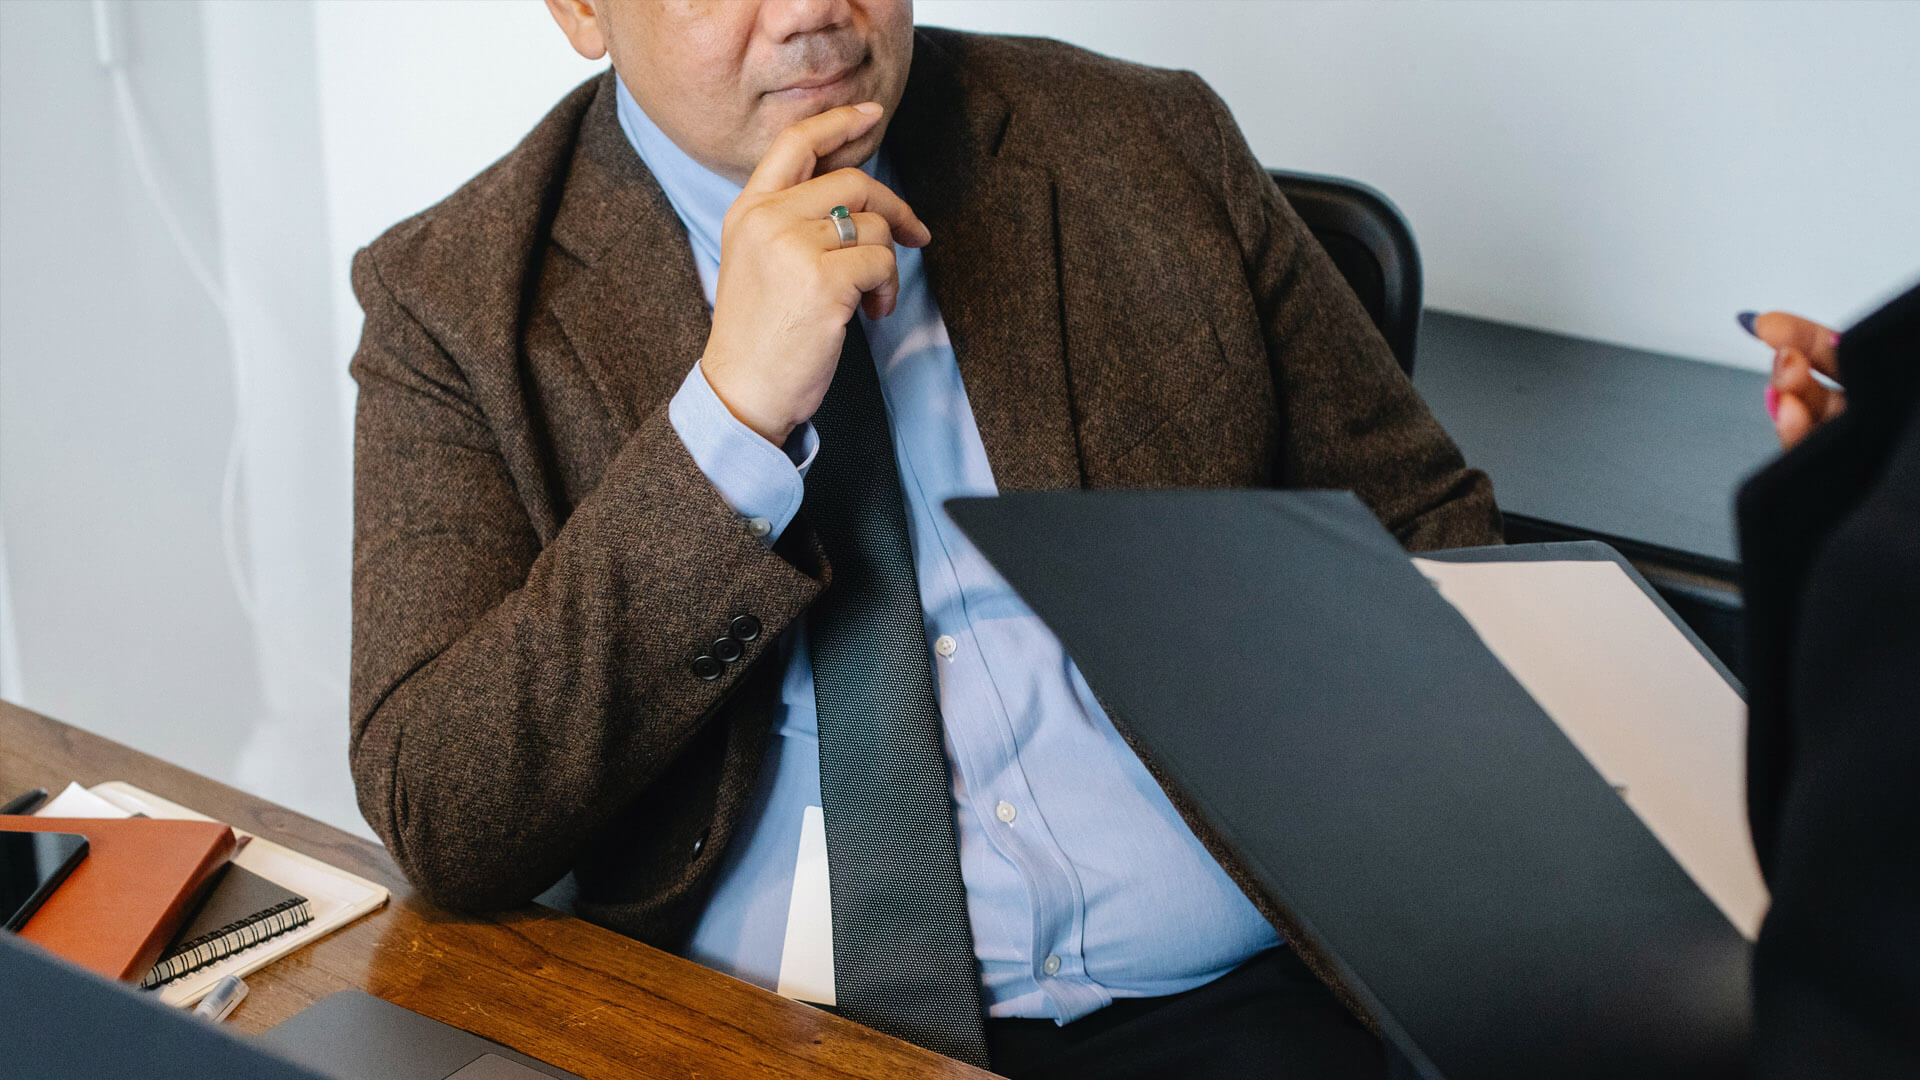 An image of a business man discussing estate planning for small business owners with an estate planning attorney.